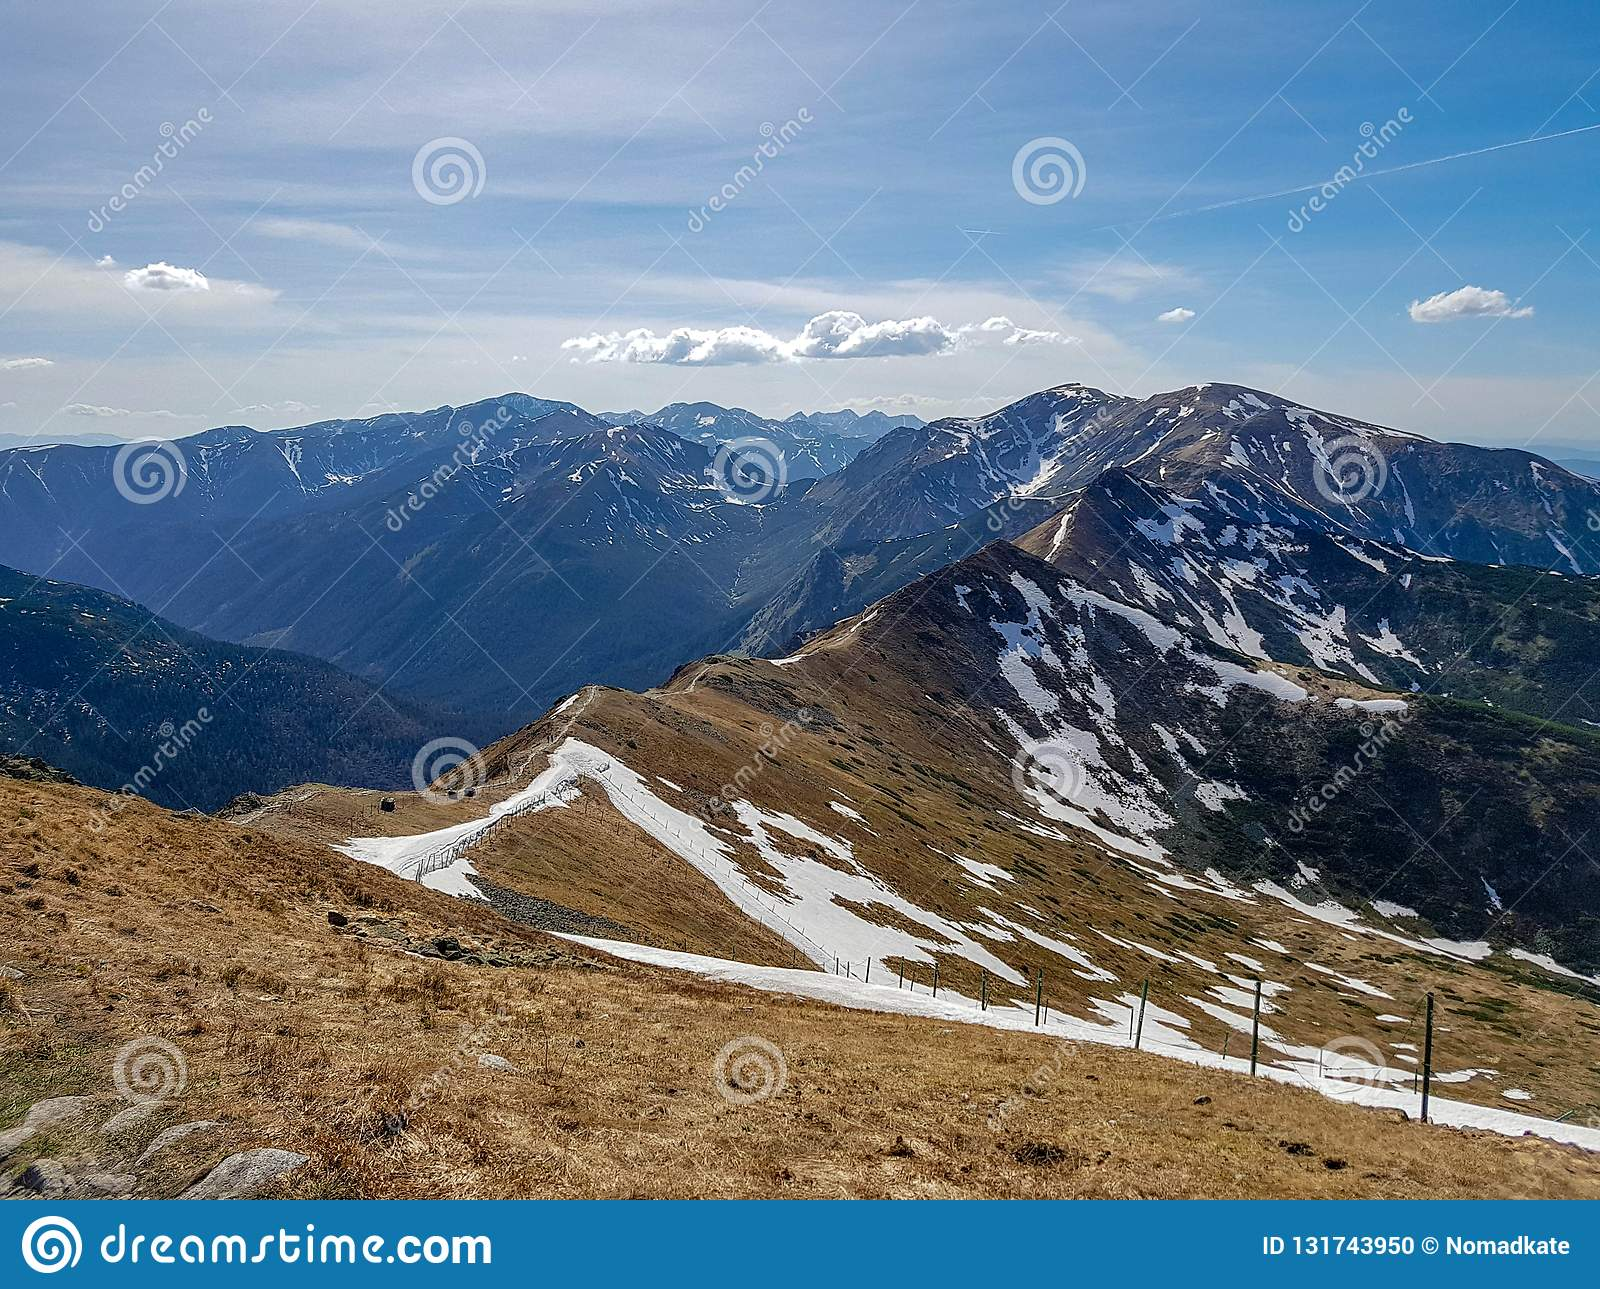 Beautiful landscape of Tatra National Park with mountains in sunny spring day with blue sky nearby Zakopane village, Poland